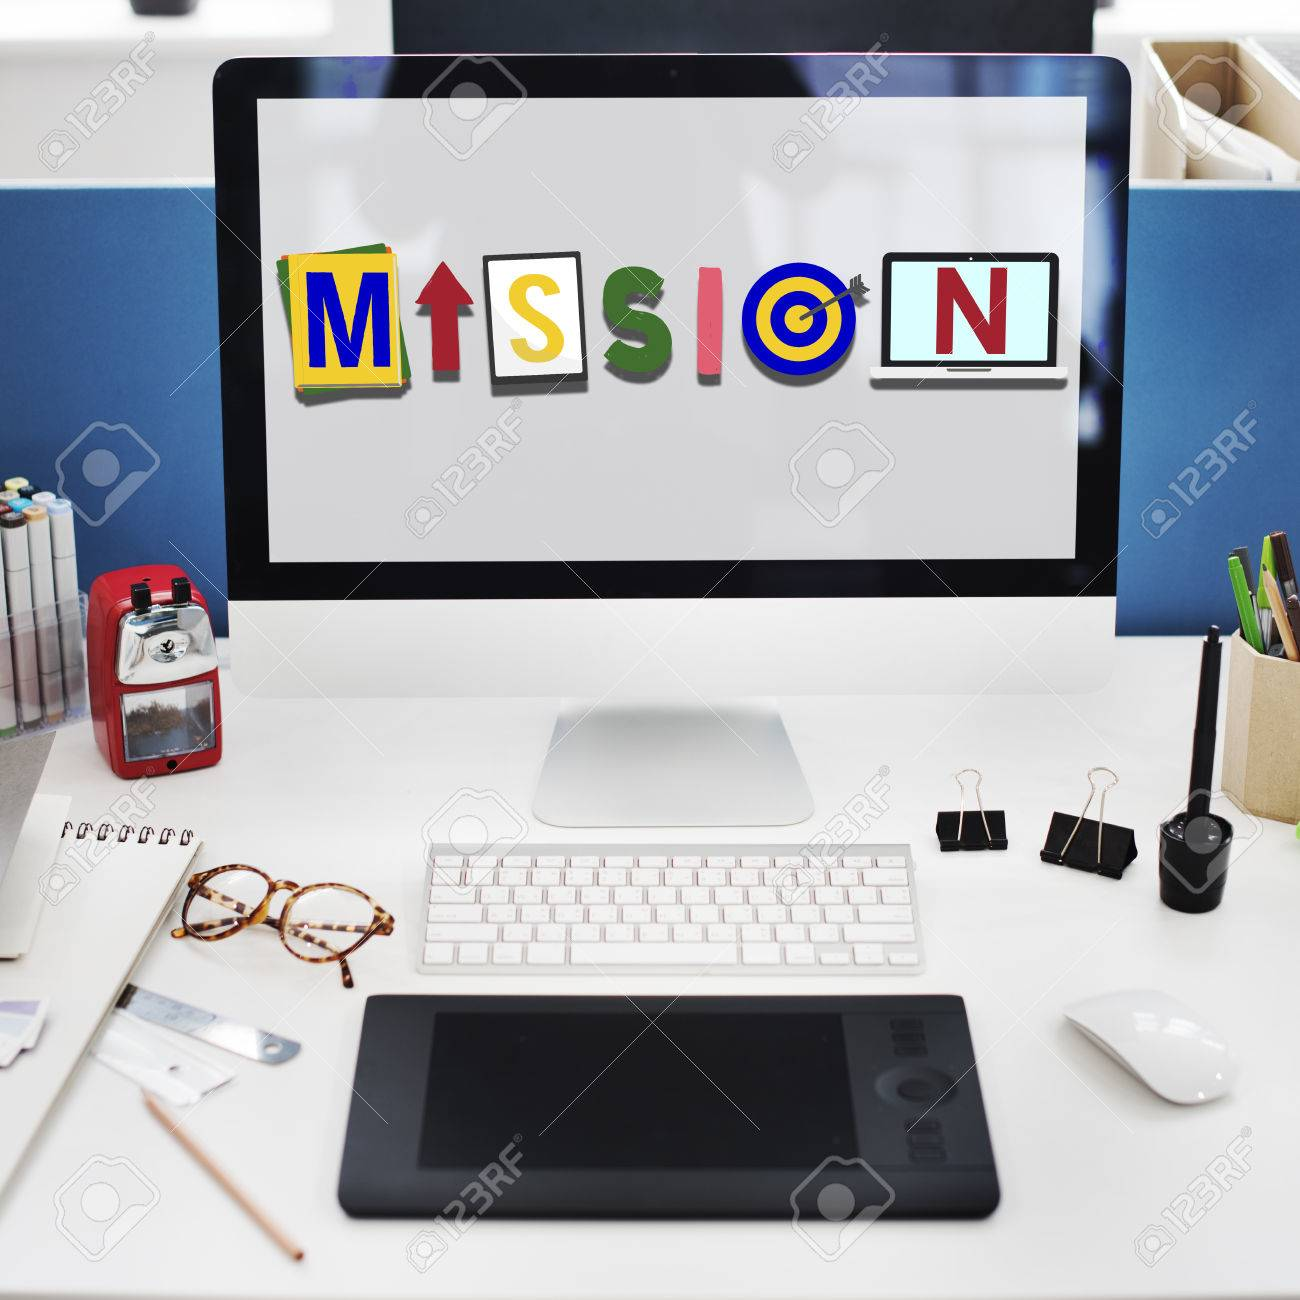 mission objective plan strategy target goals aspirations concept mission objective plan strategy target goals aspirations concept stock photo 56183497